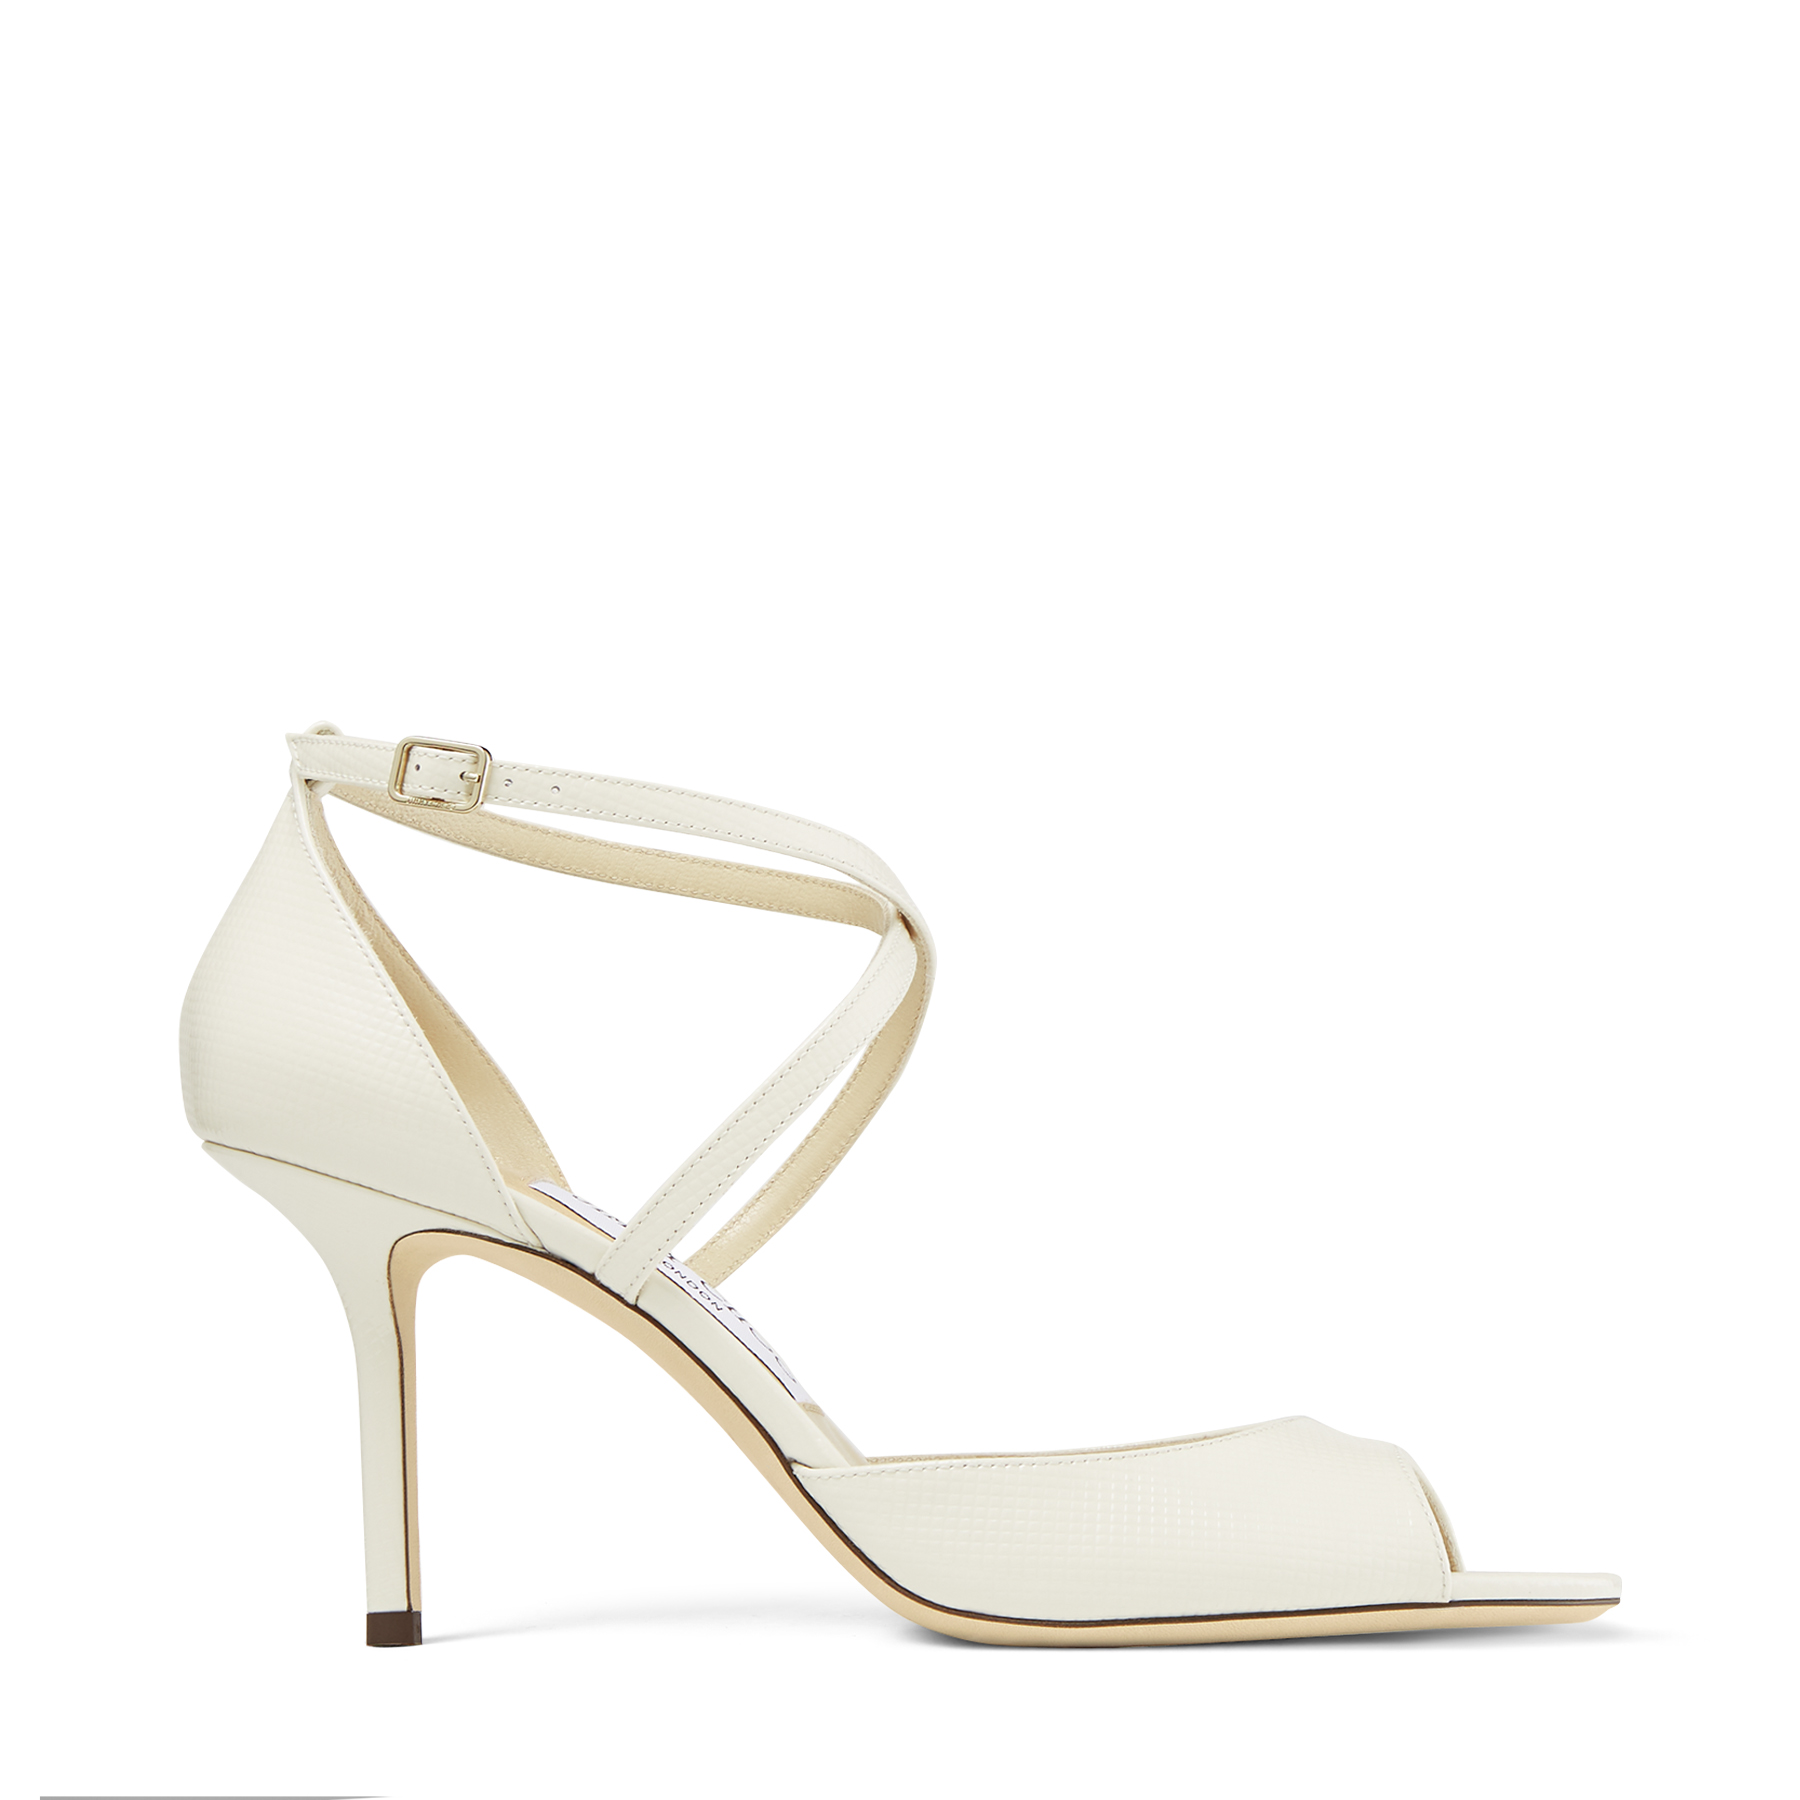 Our latte chevron-embossed patent leather EMSY 85 sandals are a flattering pair that lend a beautifully textured touch to day-to-night looks. This Italian-crafted style is set on a slender stiletto heel, and finished crossover arch straps for leg-lengthening effect.